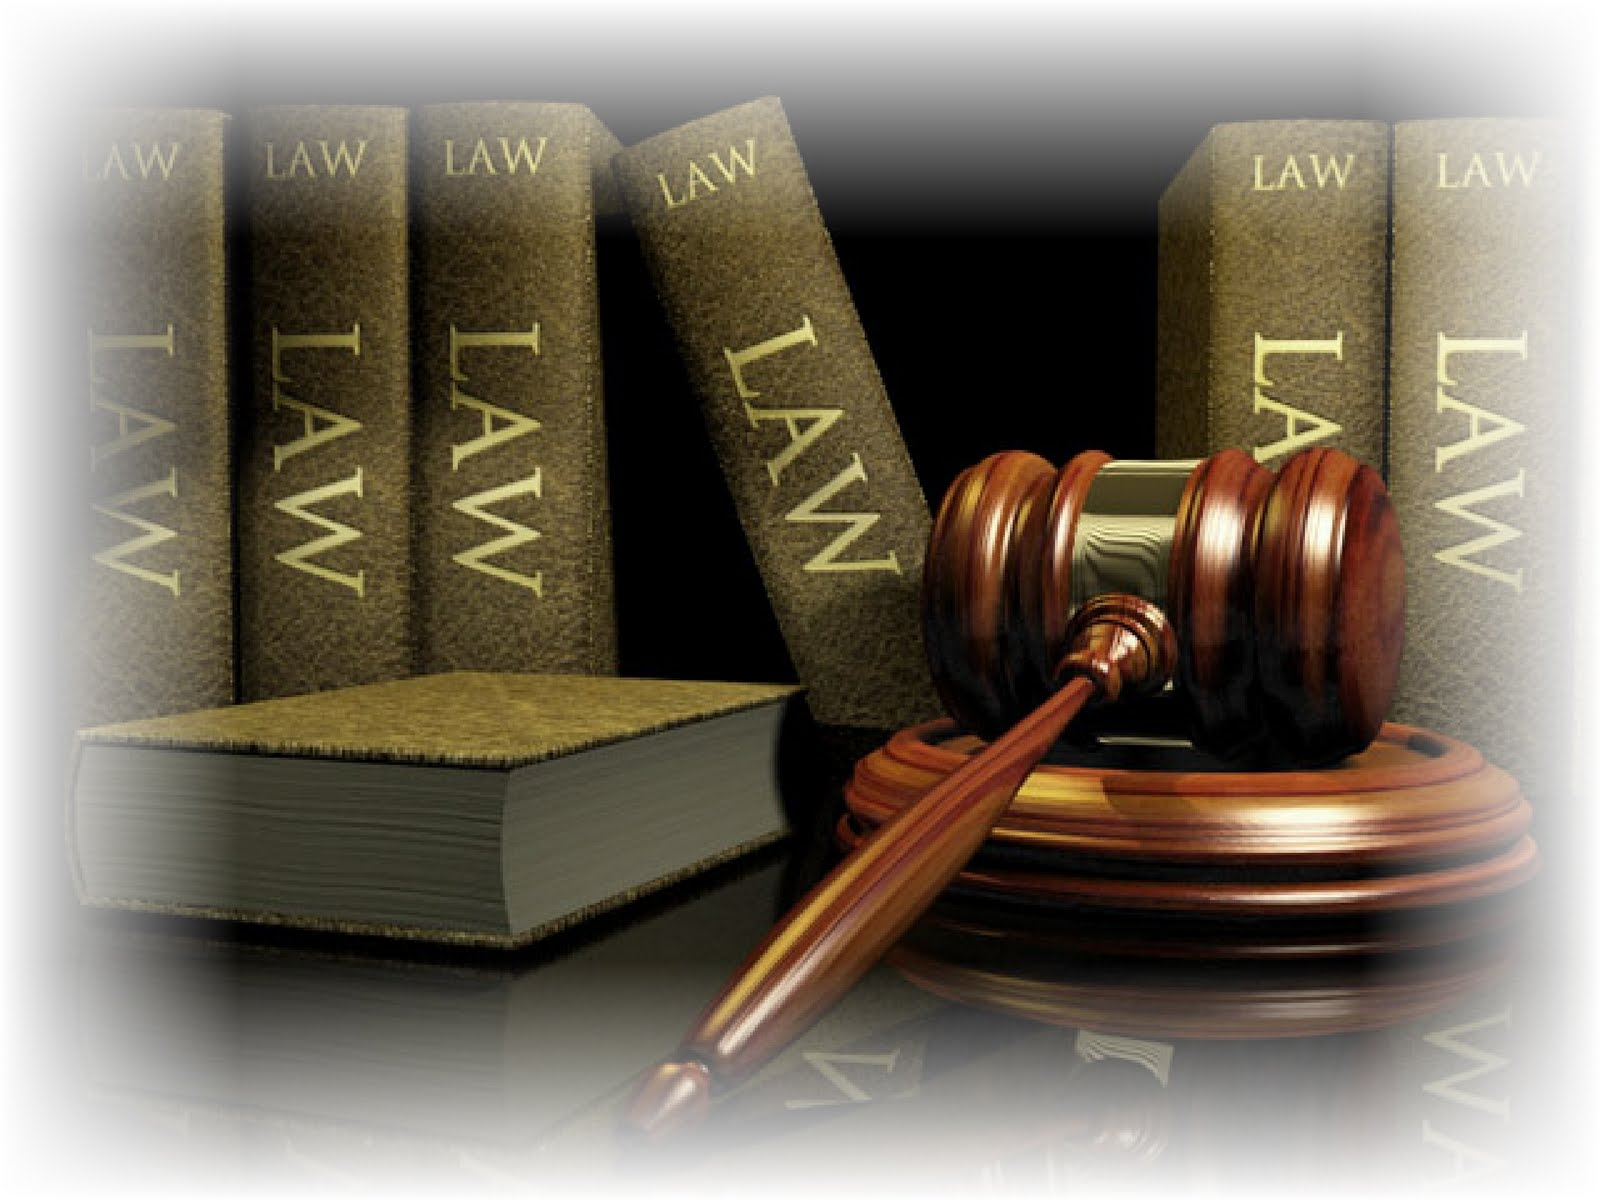 About clat coaching 2018 in chandigarh  | JURIST LAW ACADEMY | clat coaching 2018 in chandigarh , Best Clat coaching 2018 in chandigarh , TOP Clat coaching 2018 in chandigarh - GL11872